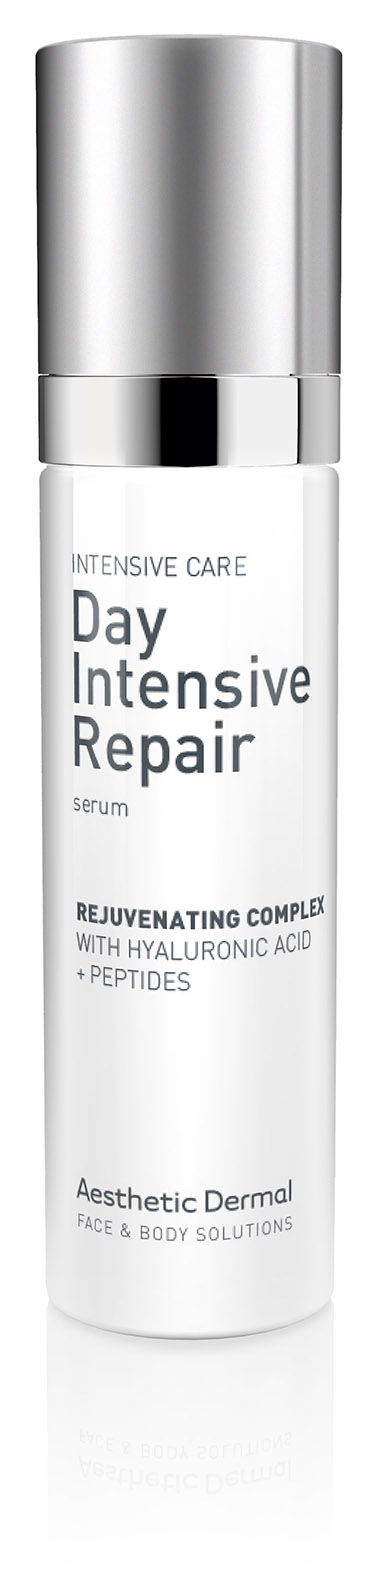 Day Intensive Repair 日常密集修護精華 50ml